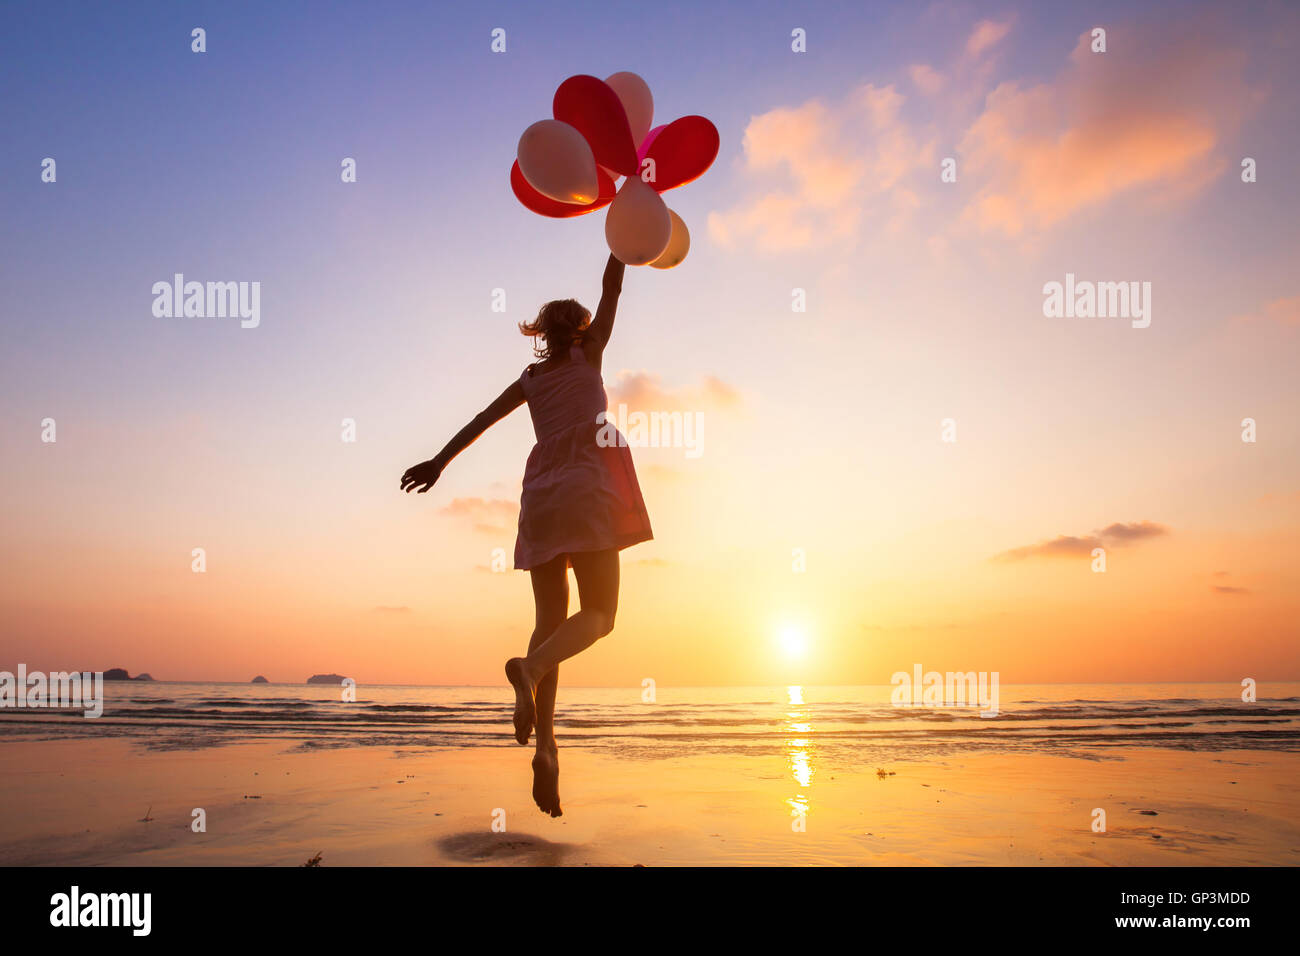 imagination, happy girl jumping with multicolored balloons at sunset on the beach, fly, follow your dream - Stock Image